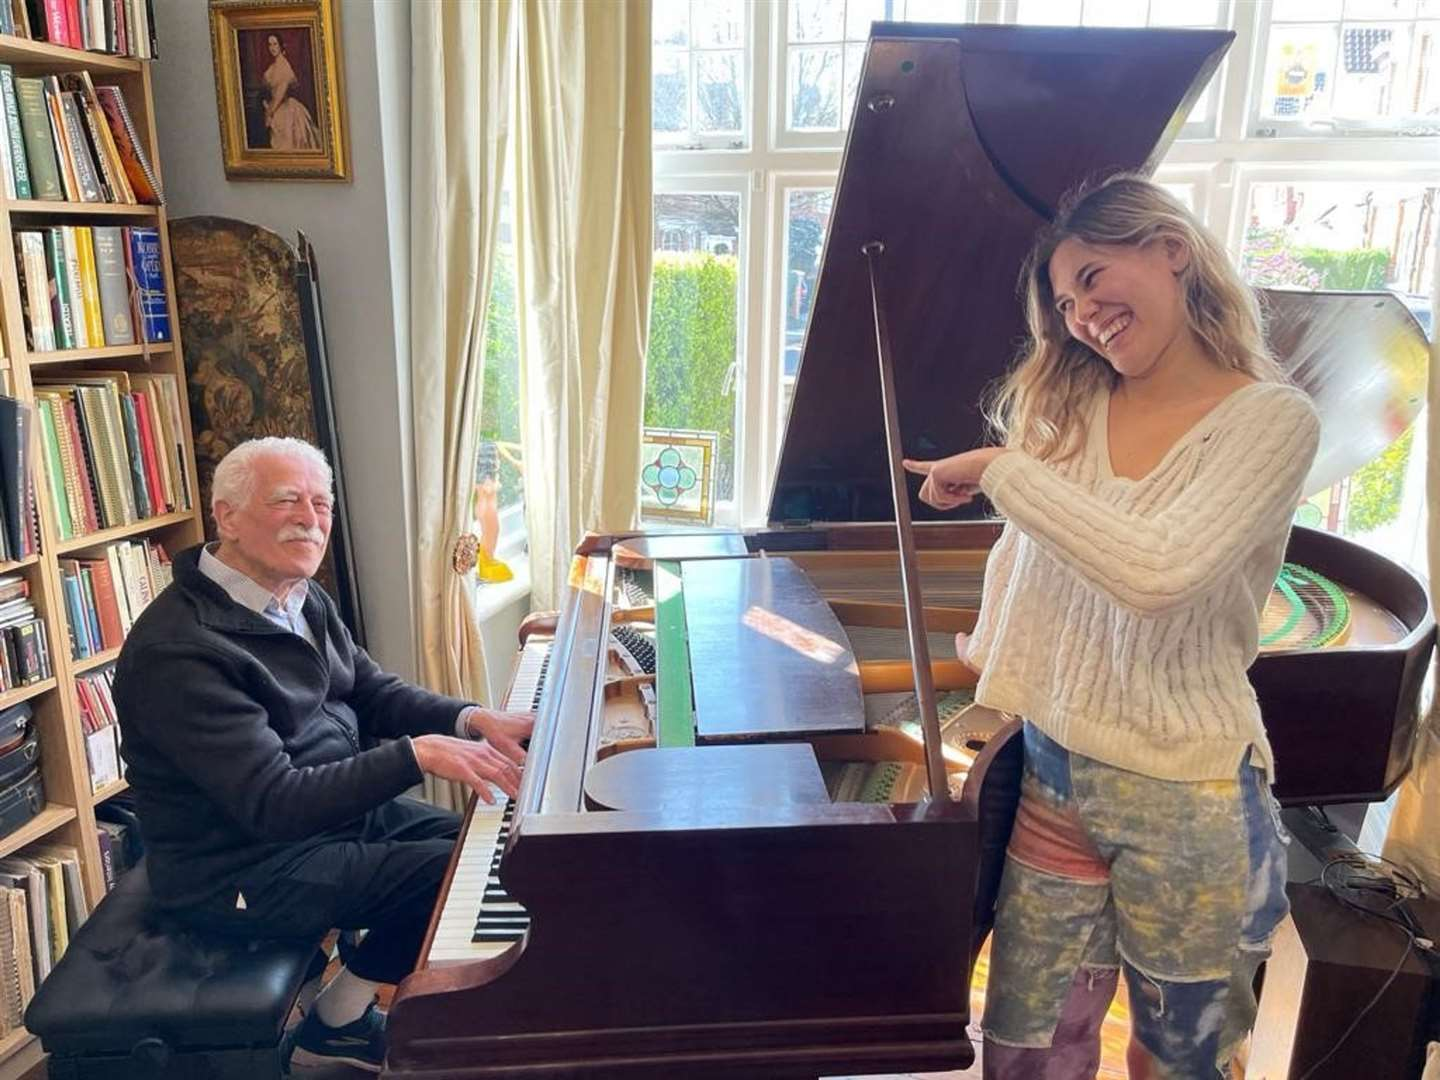 Alan Melinek playing the piano with his granddaughter Bella (Cancer Research UK/pianograndad.com)